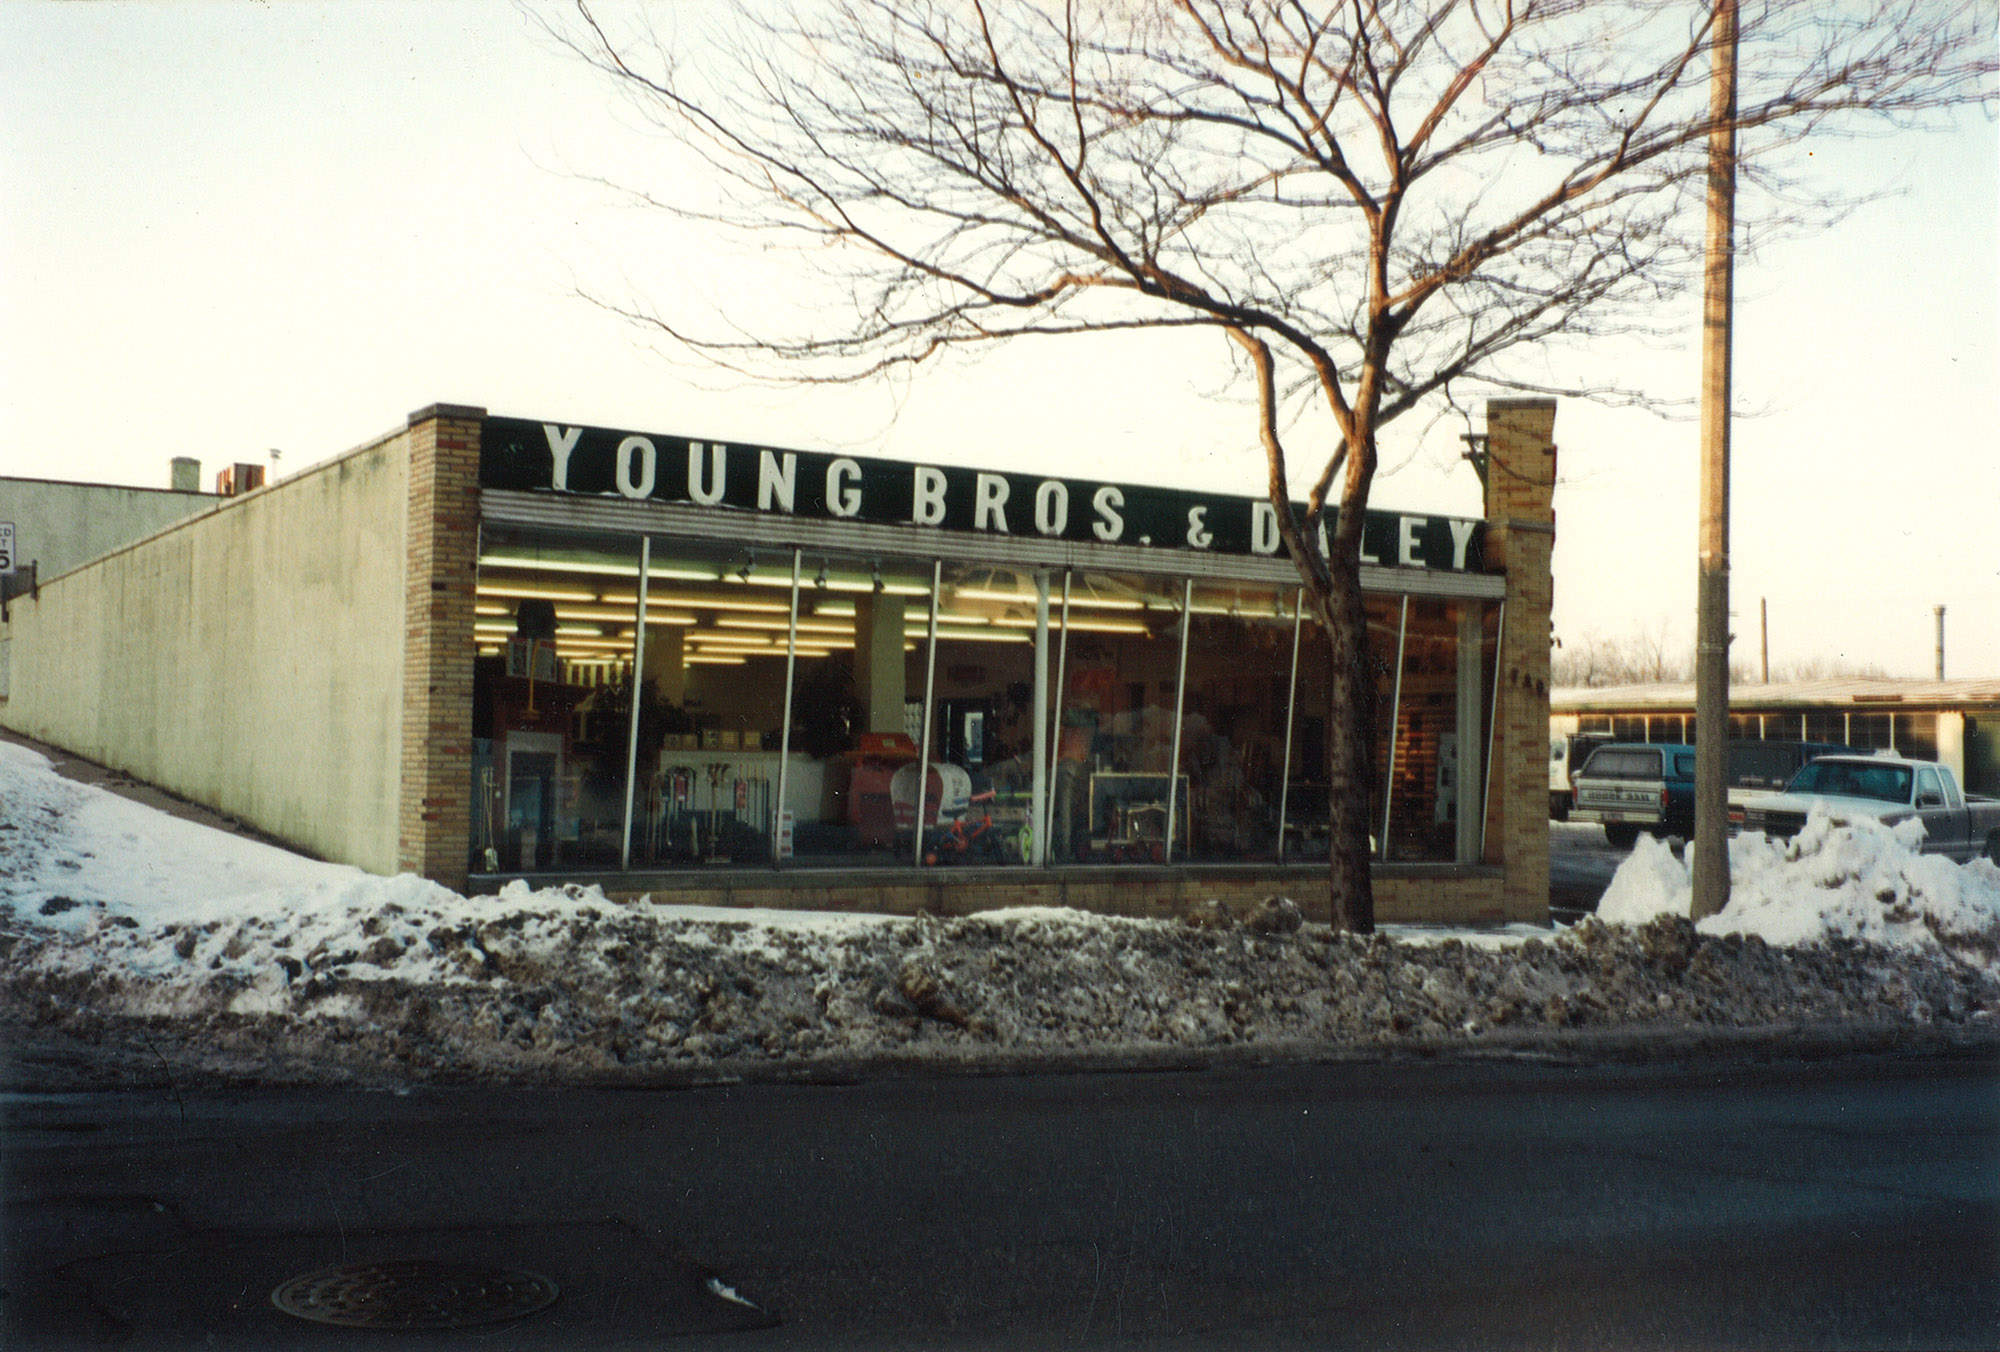 old photograph of young bros & daley storefront